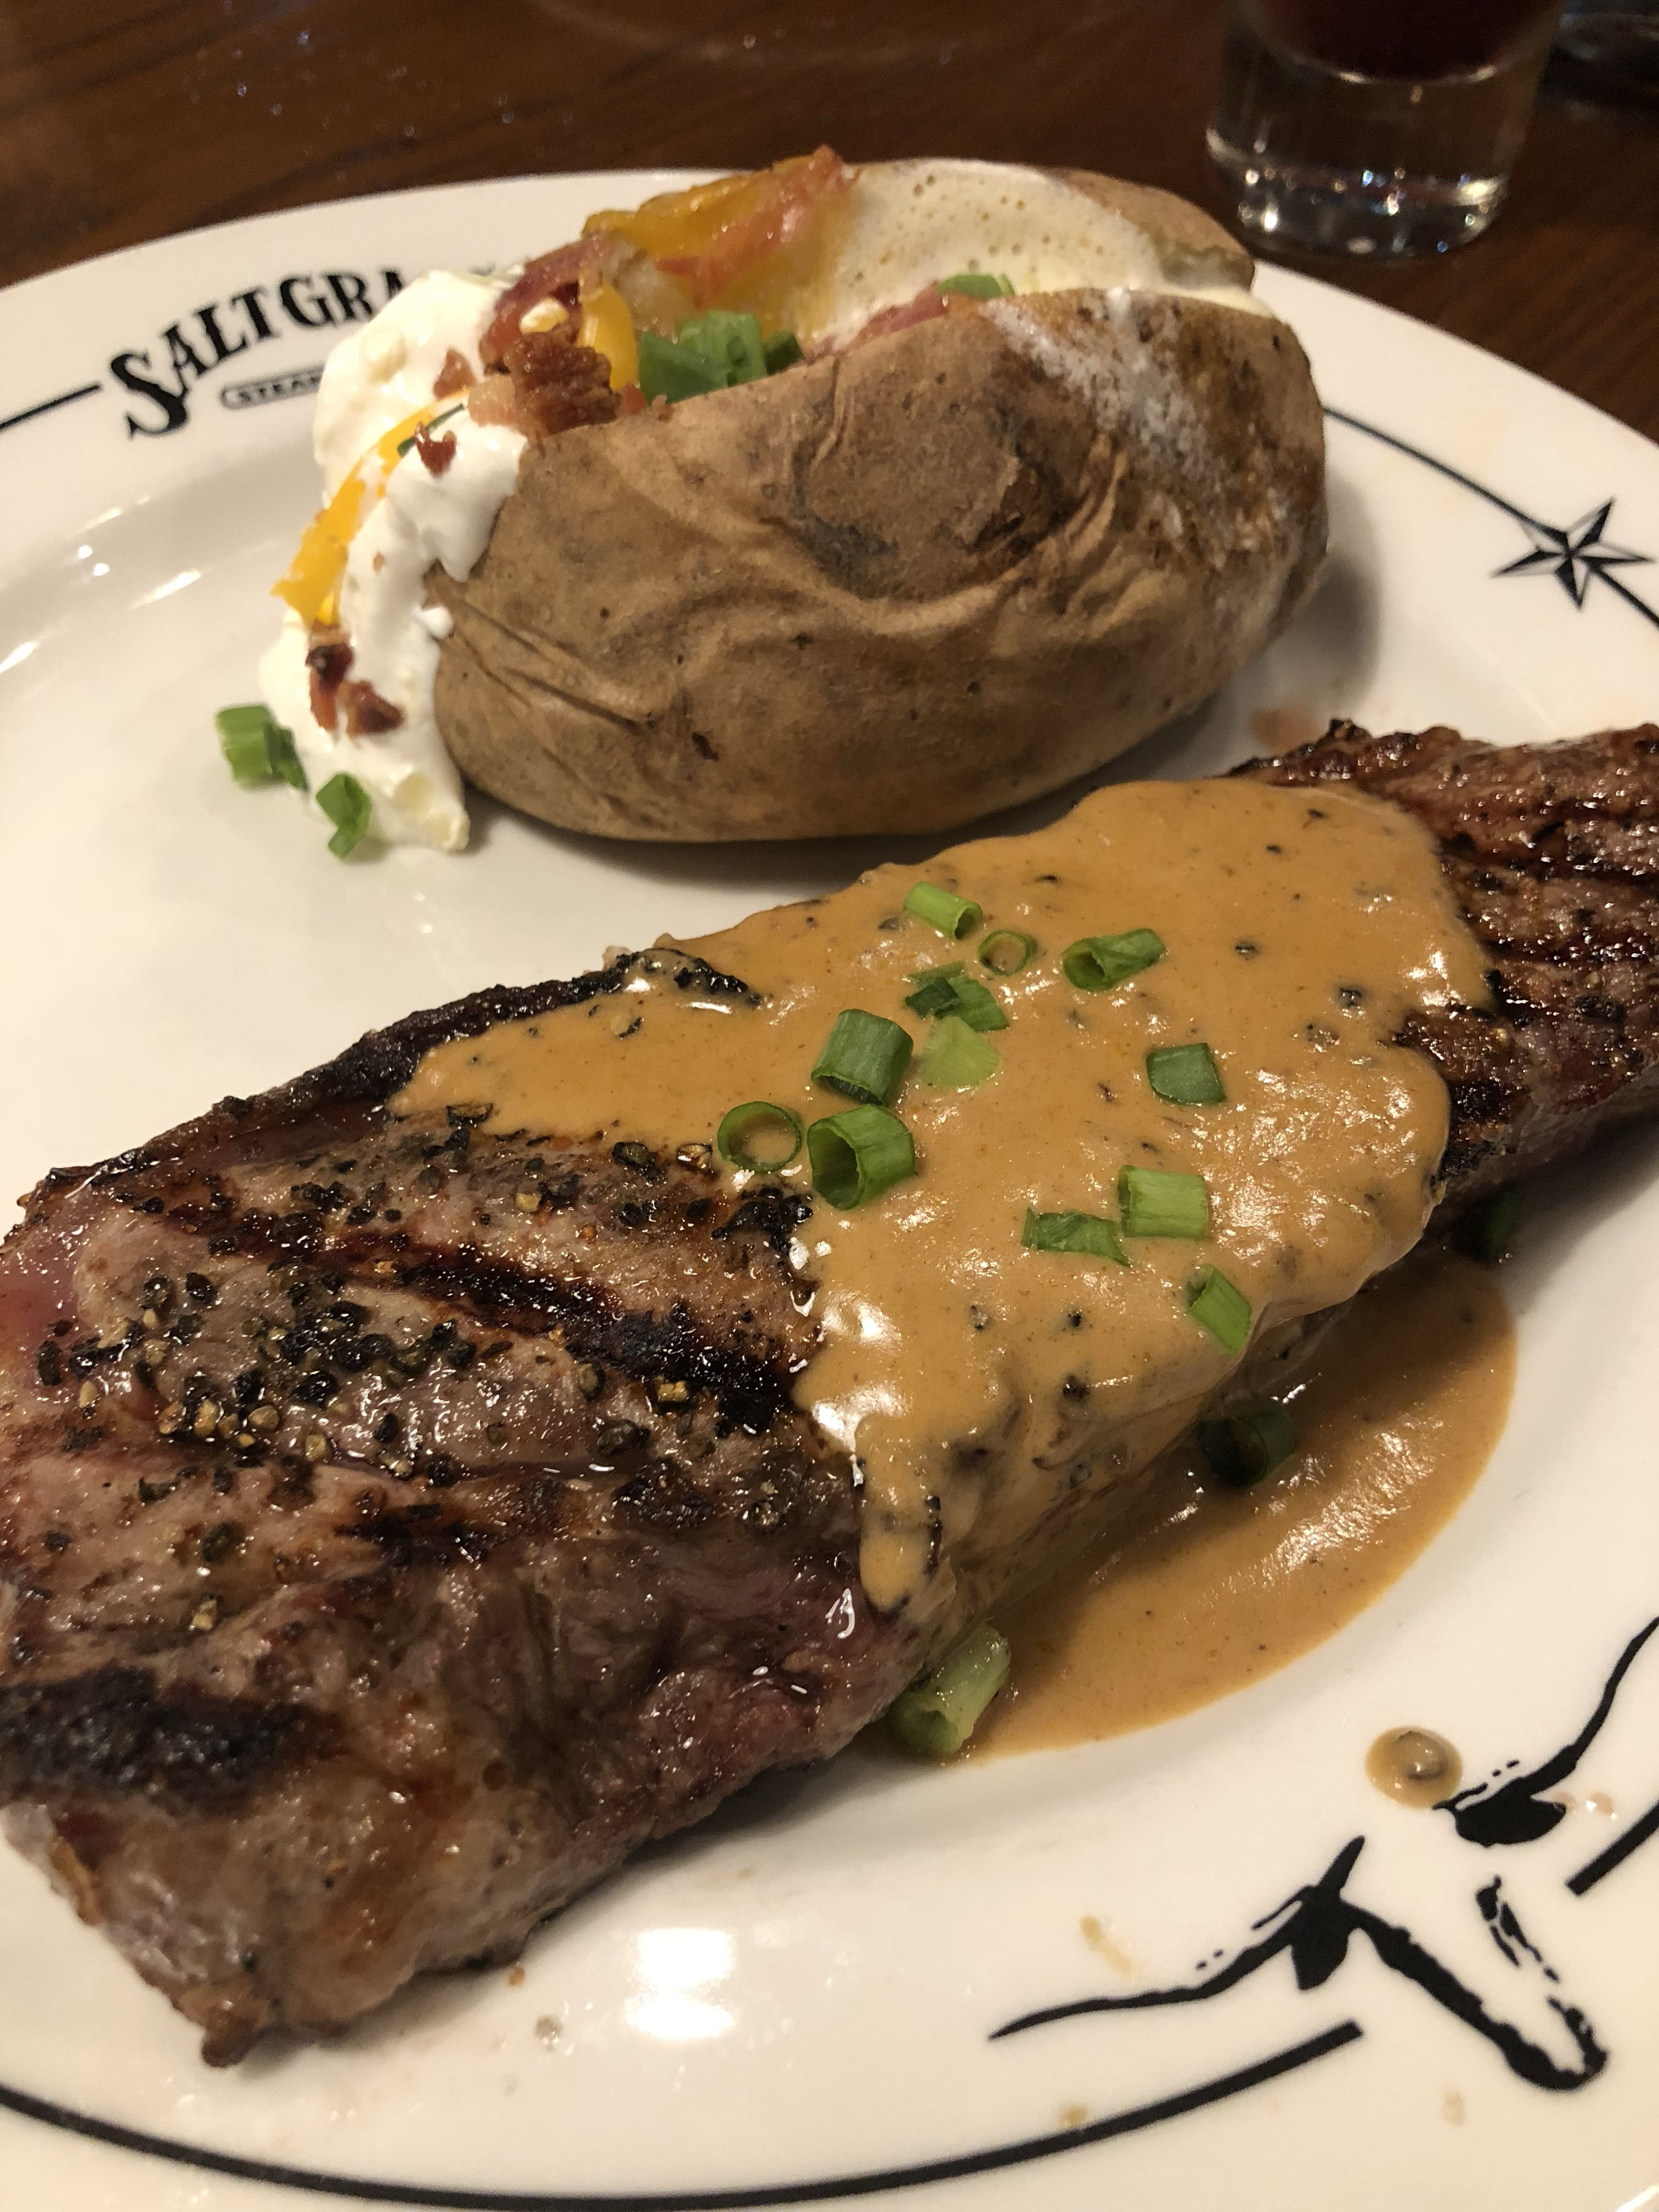 Signature Chef Selections Peppercorn Steak With A Loaded Baked Potato From Salt Gr In Pensacola Fl